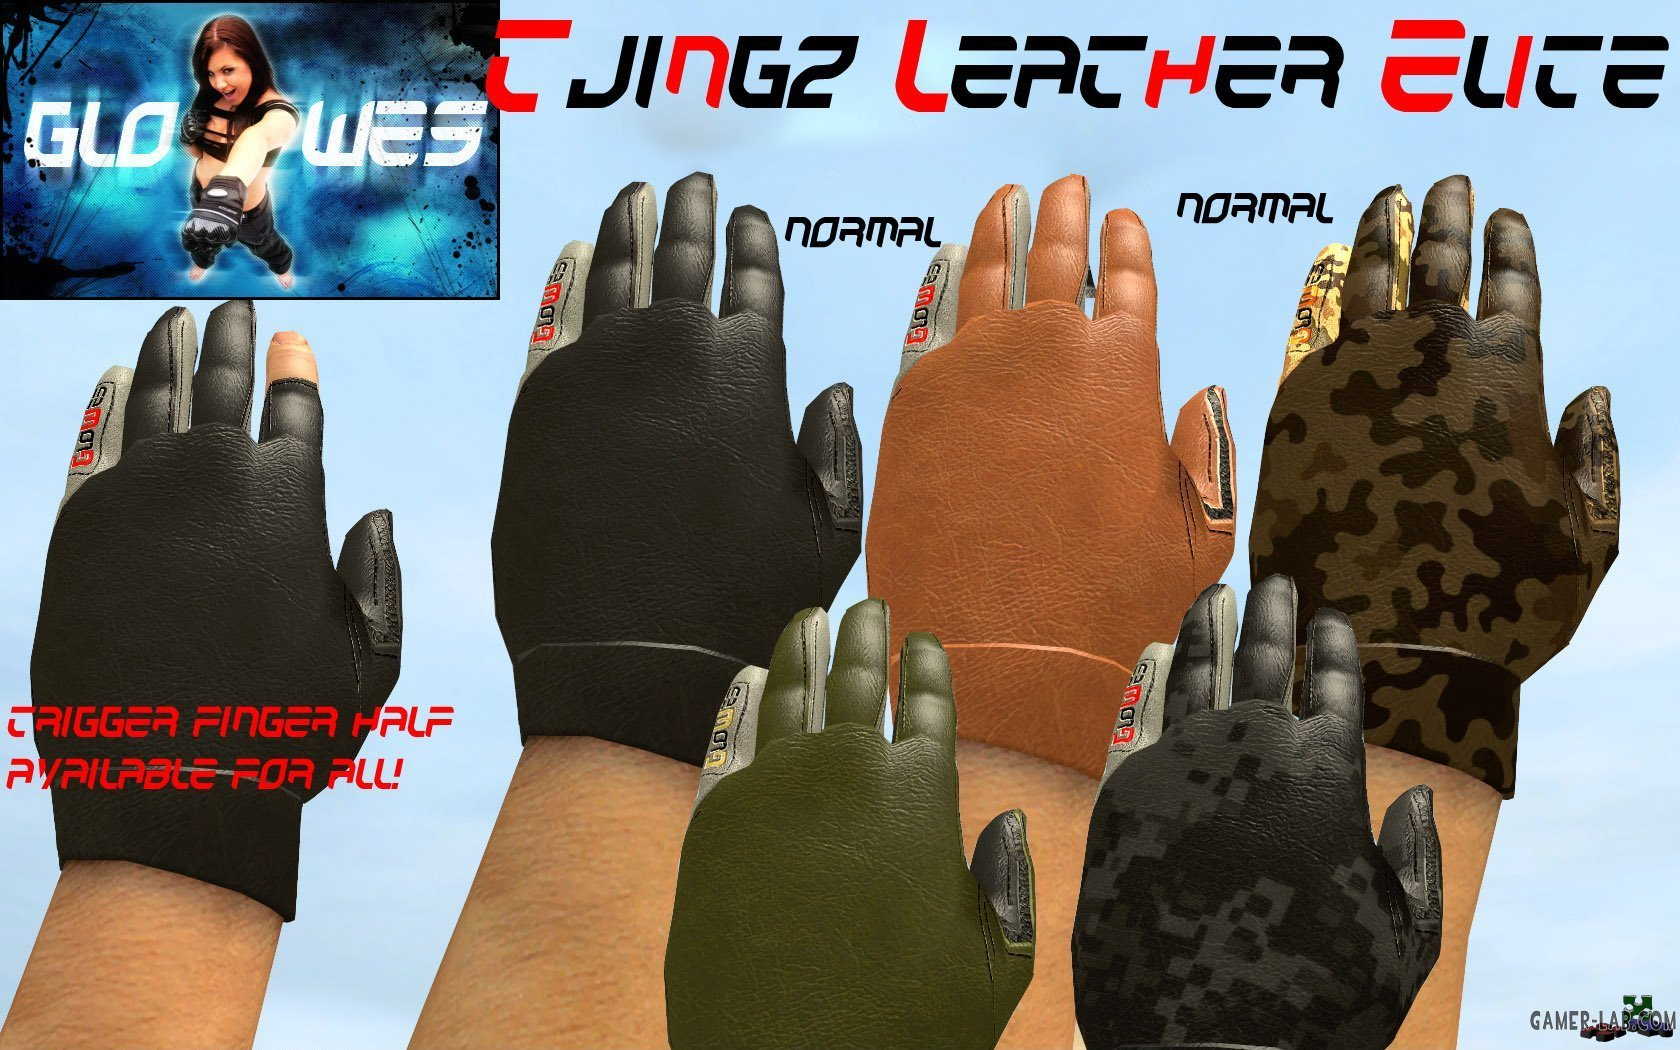 Tjingz_Full_Leather_Elite_v2